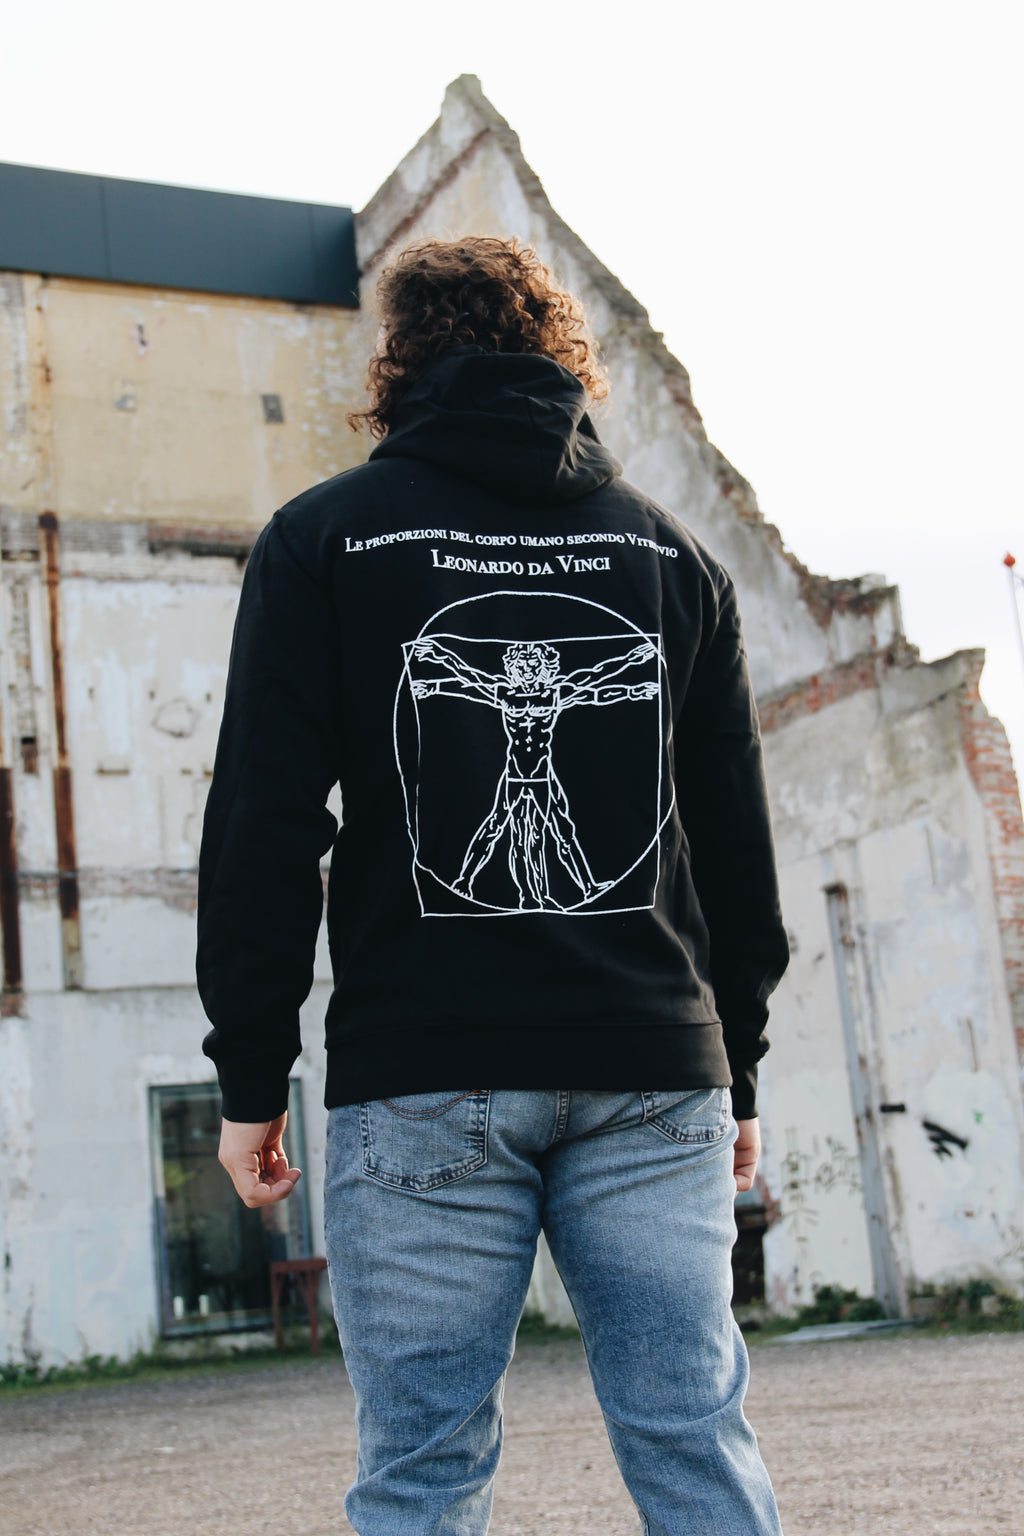 JNGL Clothing - Leonardo Da Vinci hoodie // Black - Back (on model)